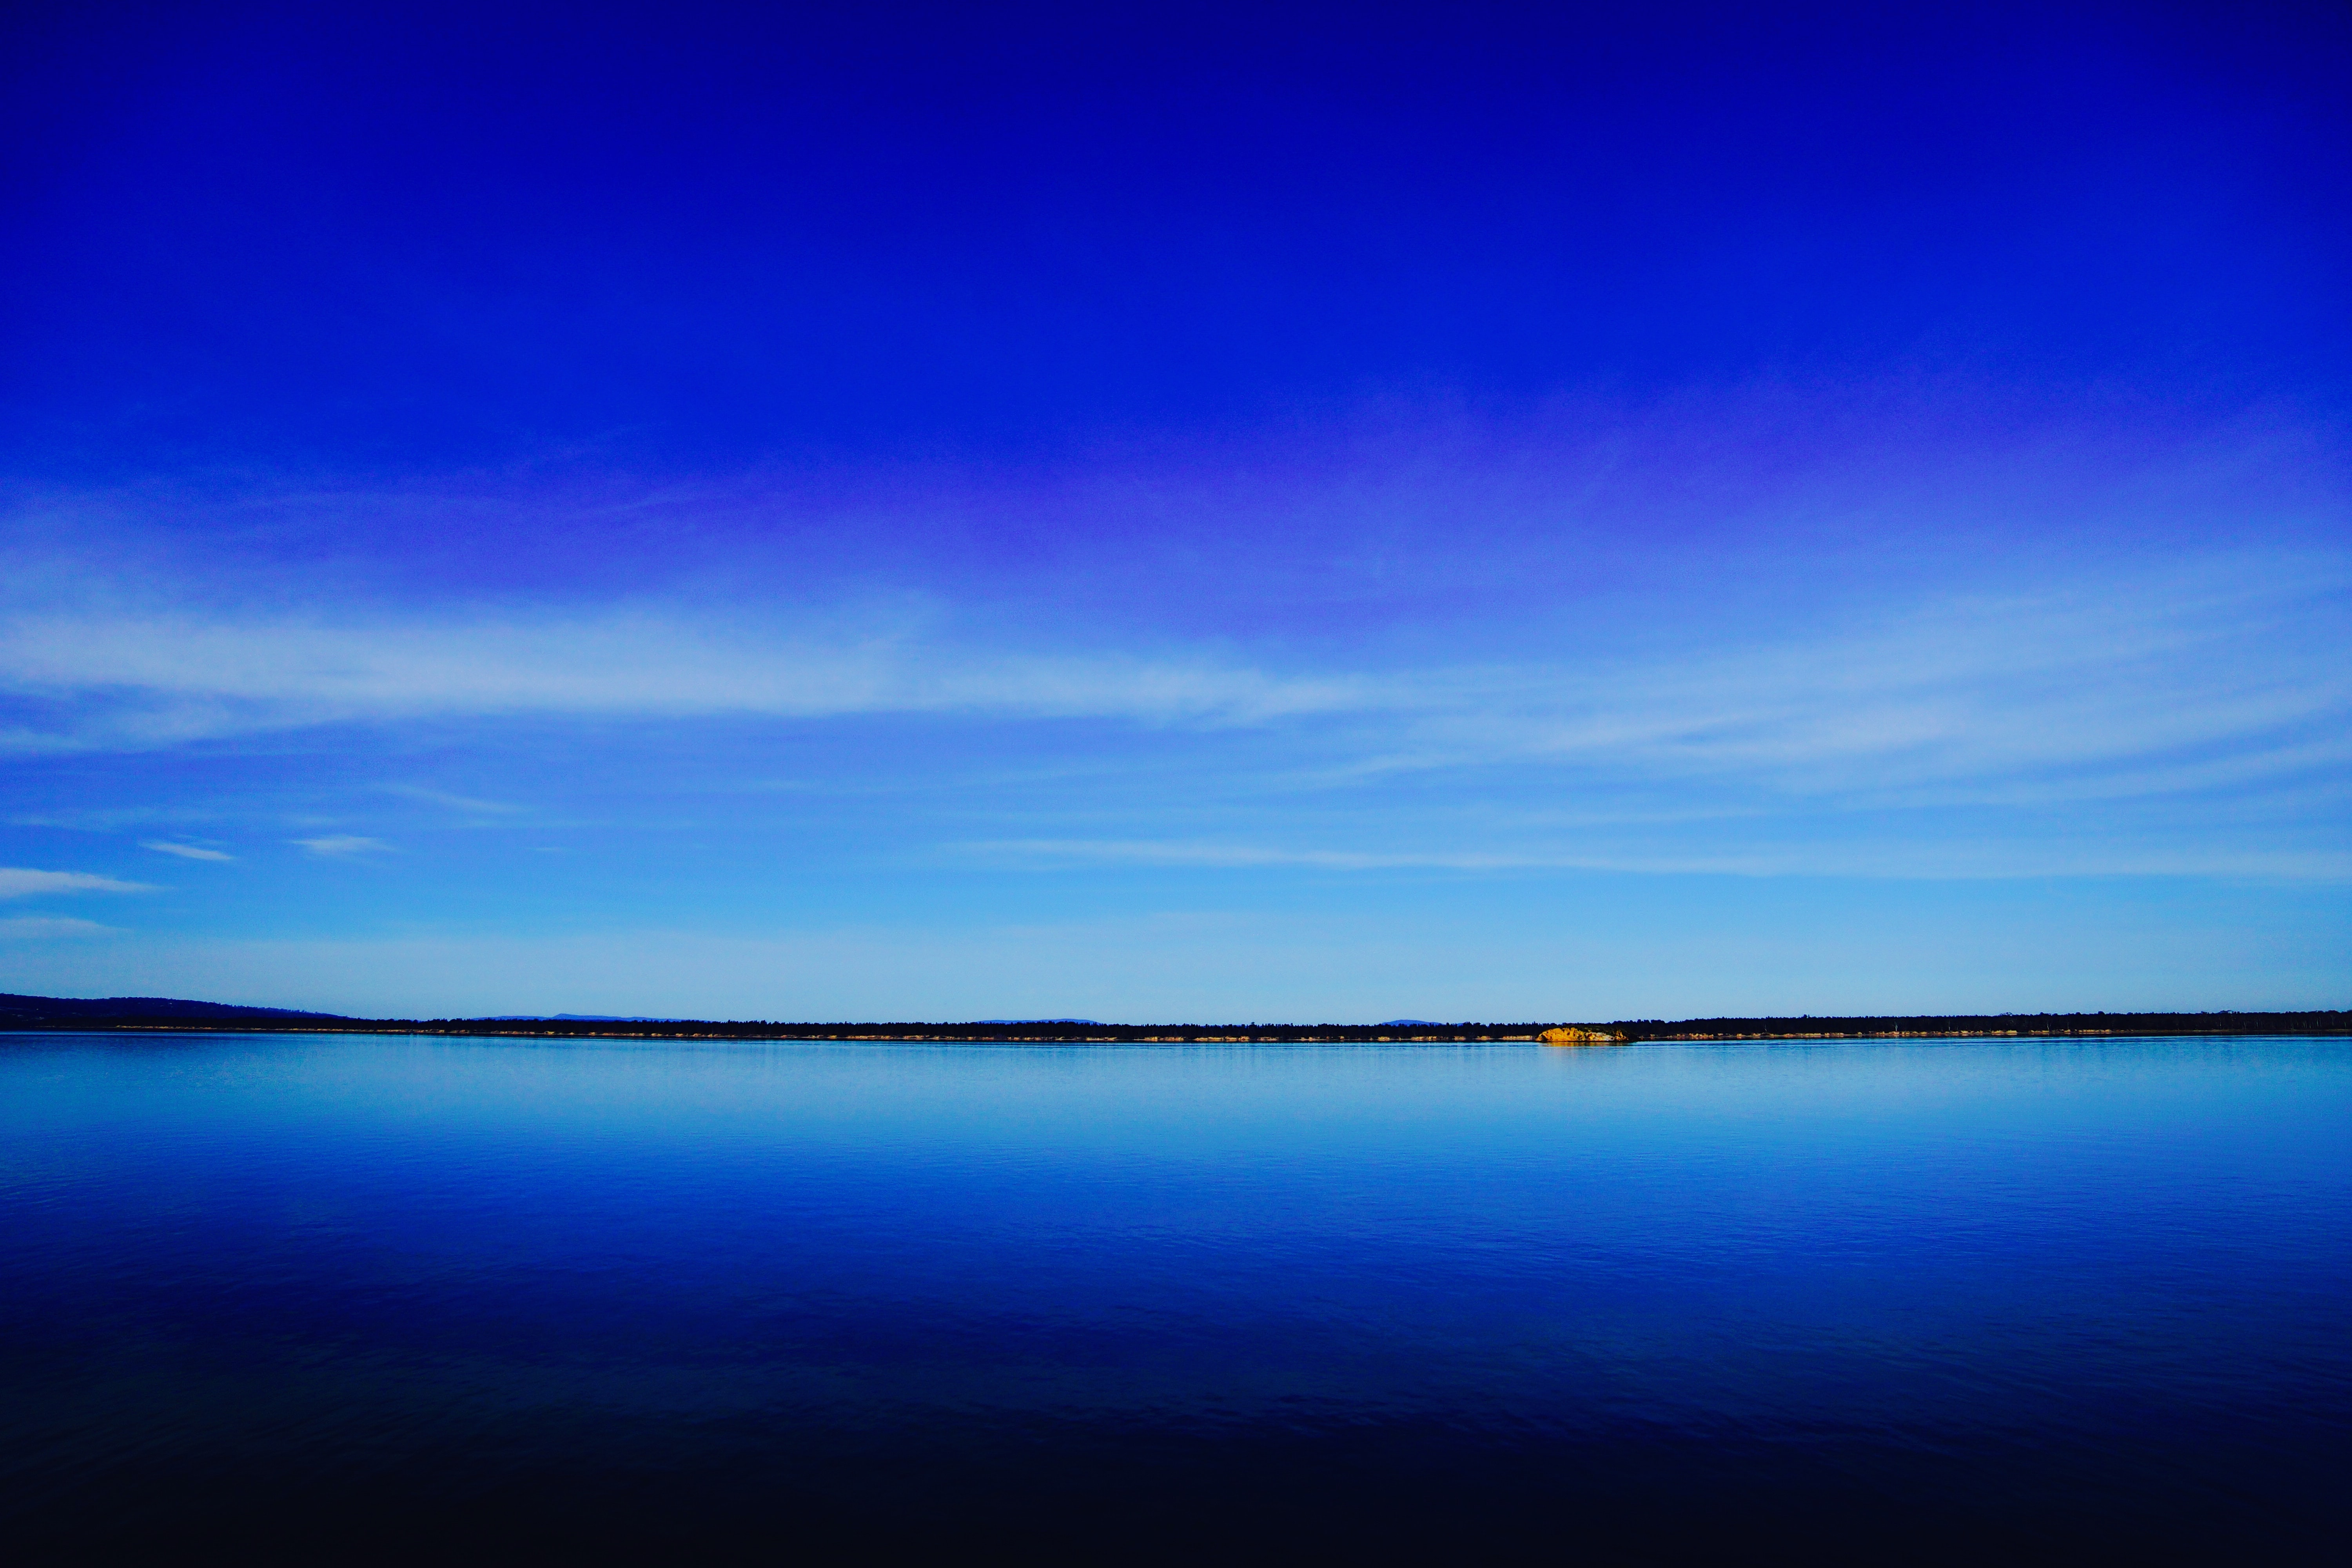 A deep blue lake and clear sky separated by a dark green shoreline on the horizon